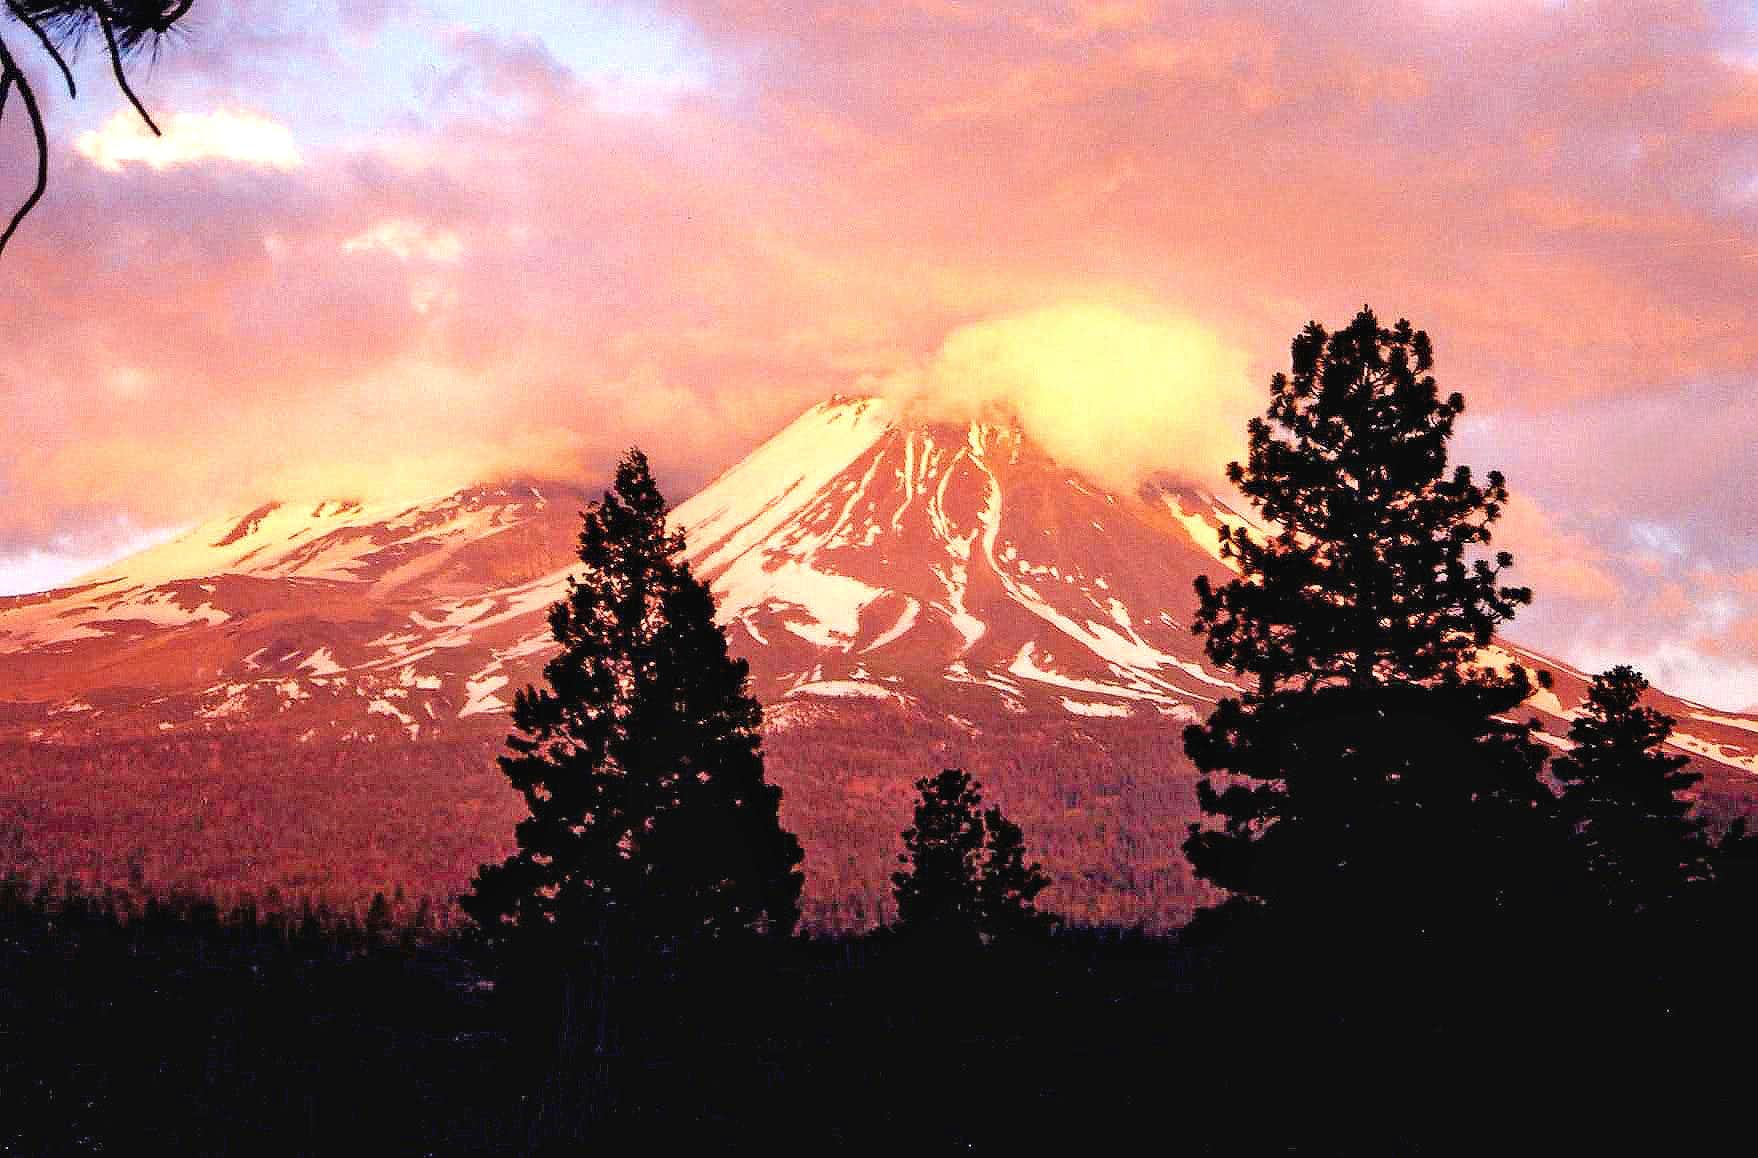 Views of Mount Shasta